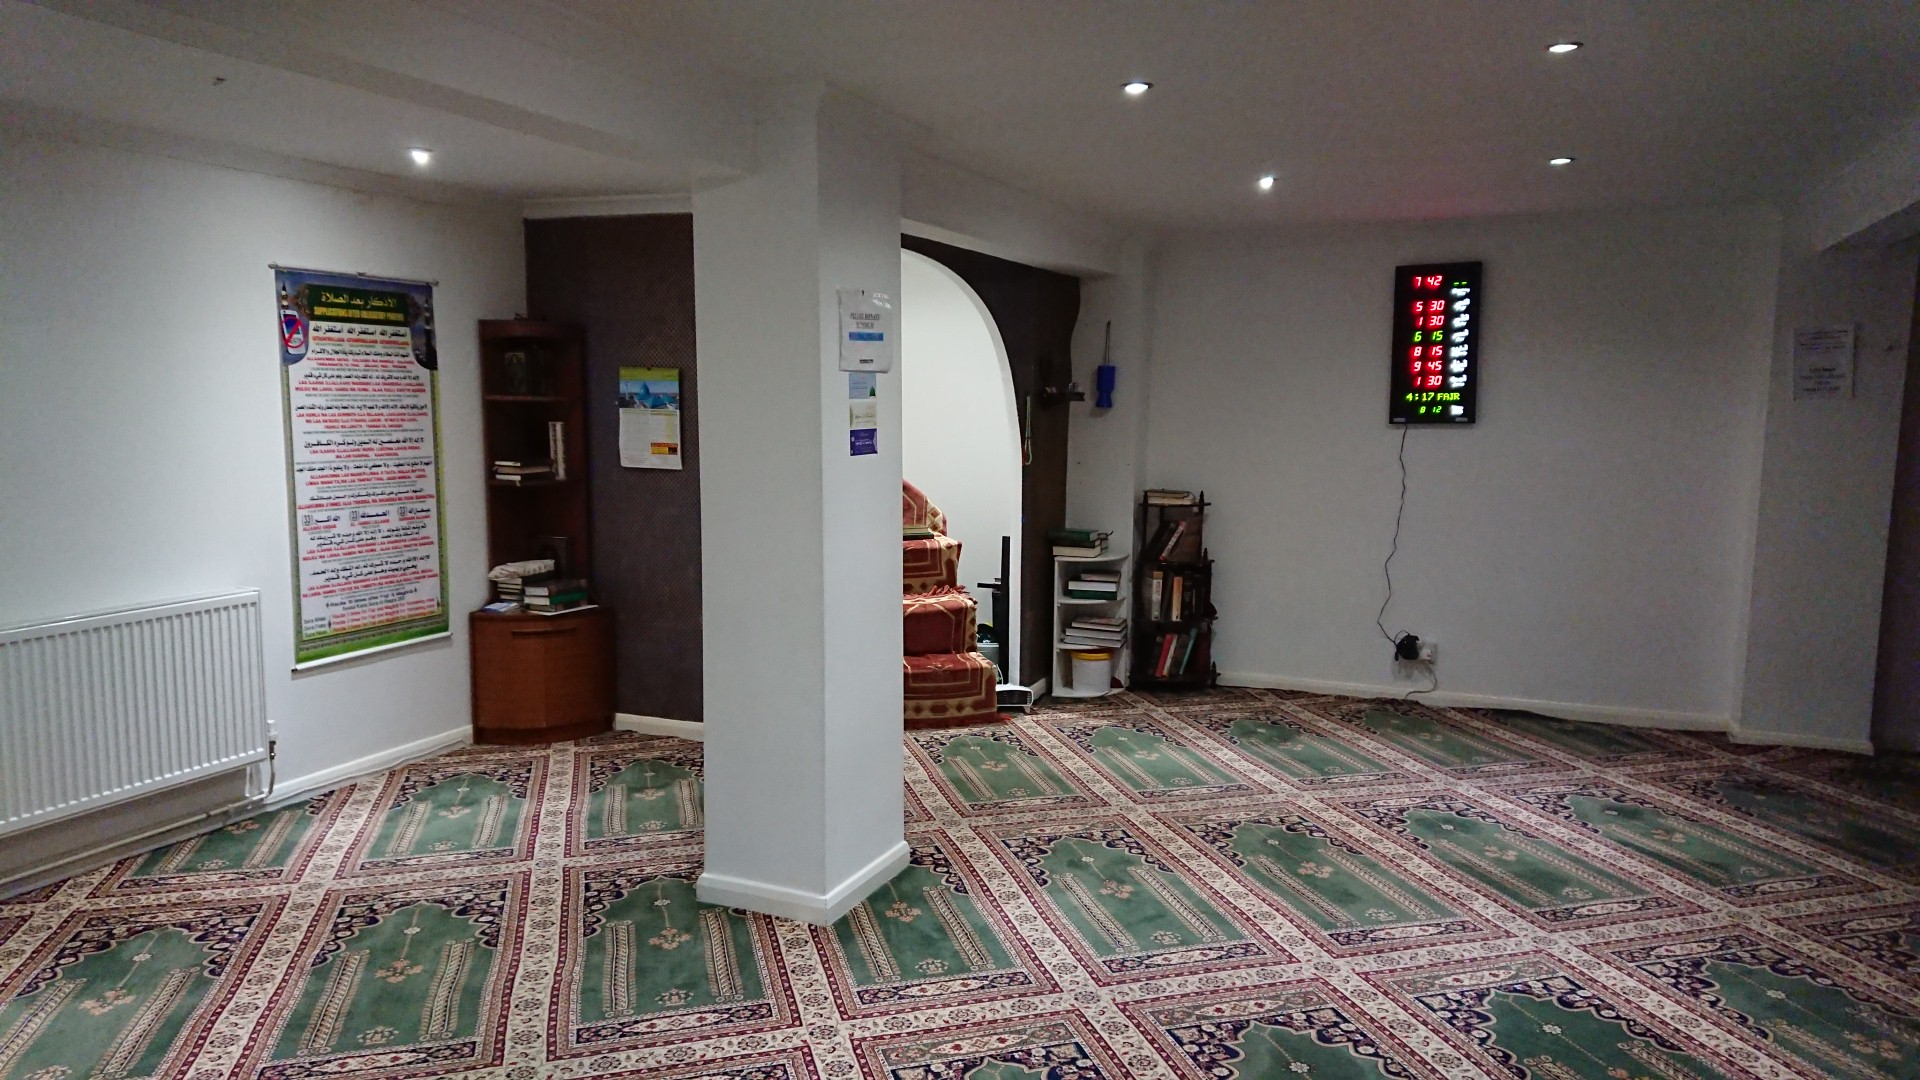 https://newburyjammemasjid.com/news-articles/Jummah Prayer at Newbury Mosque will have two jammats only (1.15 pm & 1.45 pm)